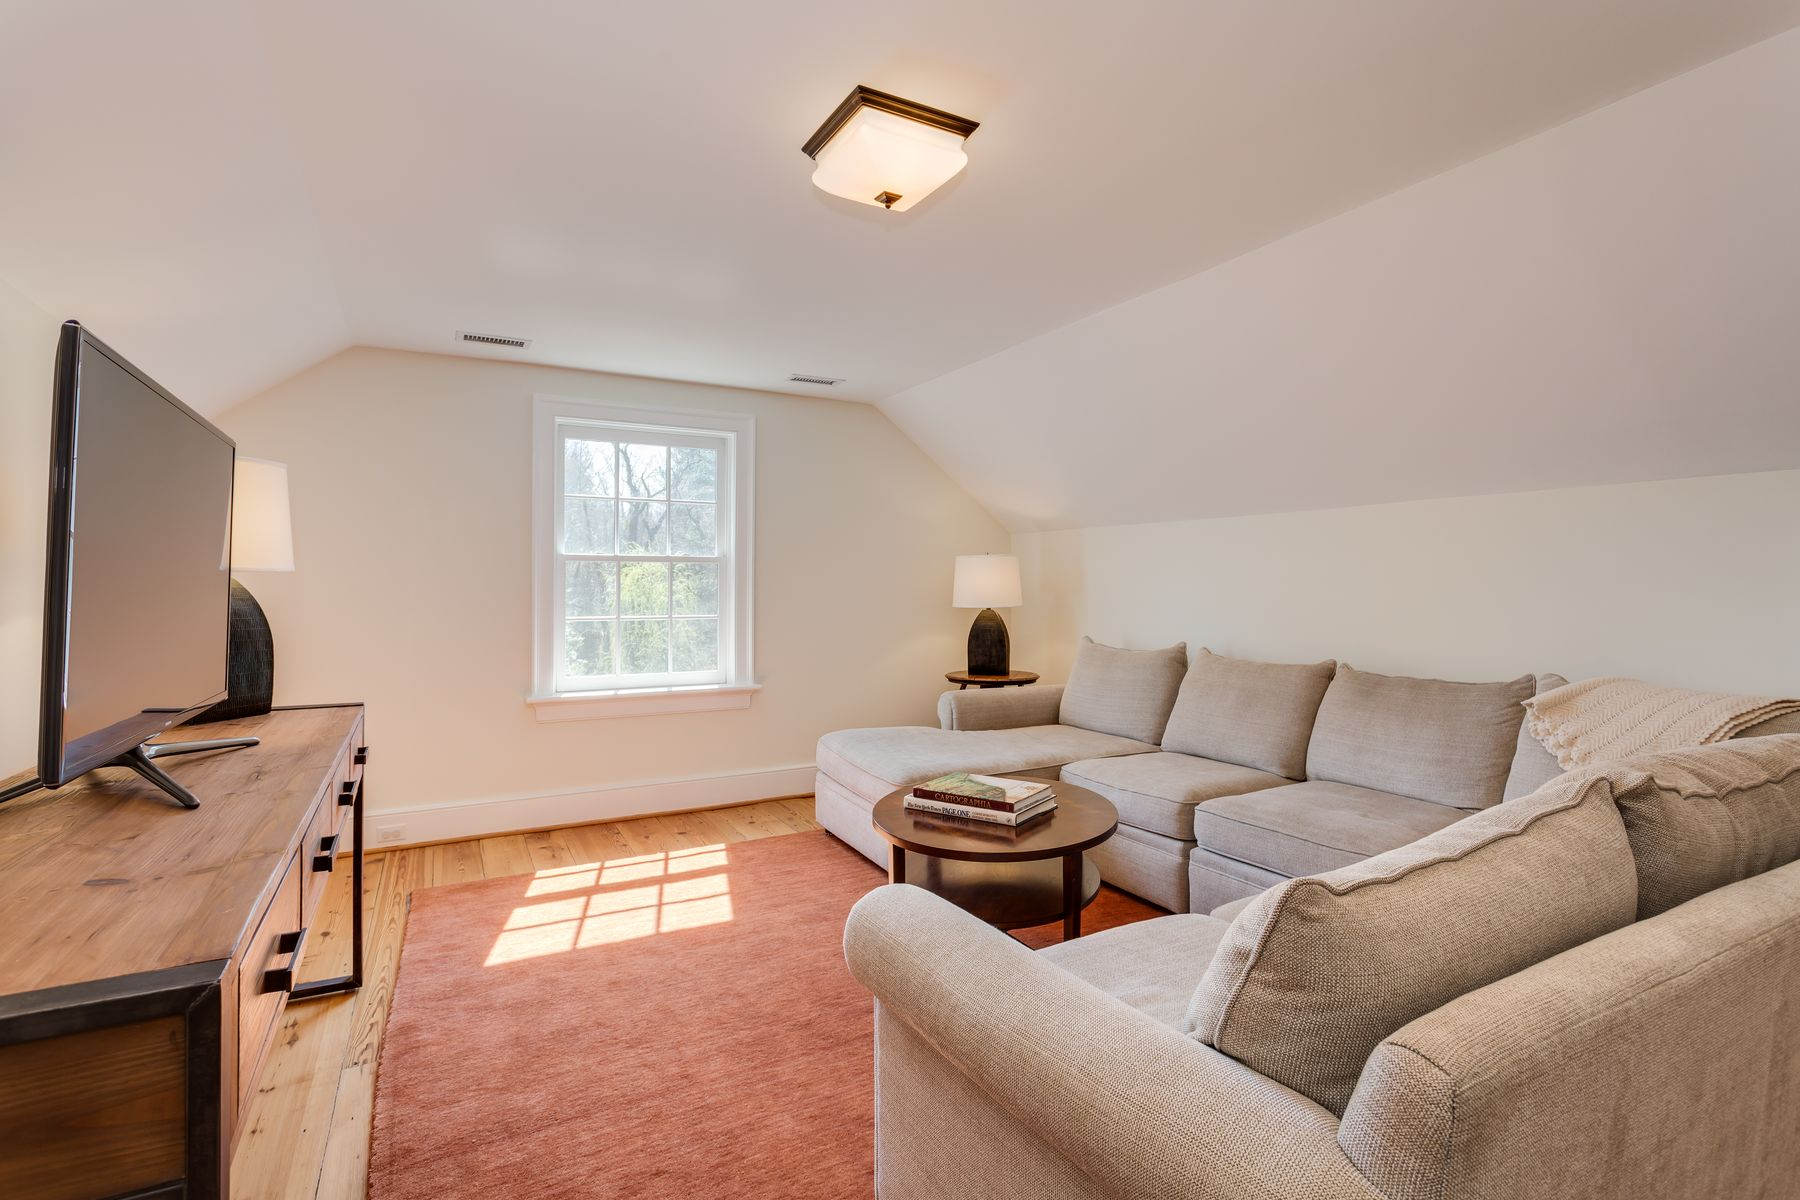 Additional photo for property listing at 684 Ivy Depot Rd  Charlottesville, Virginia 22903 United States